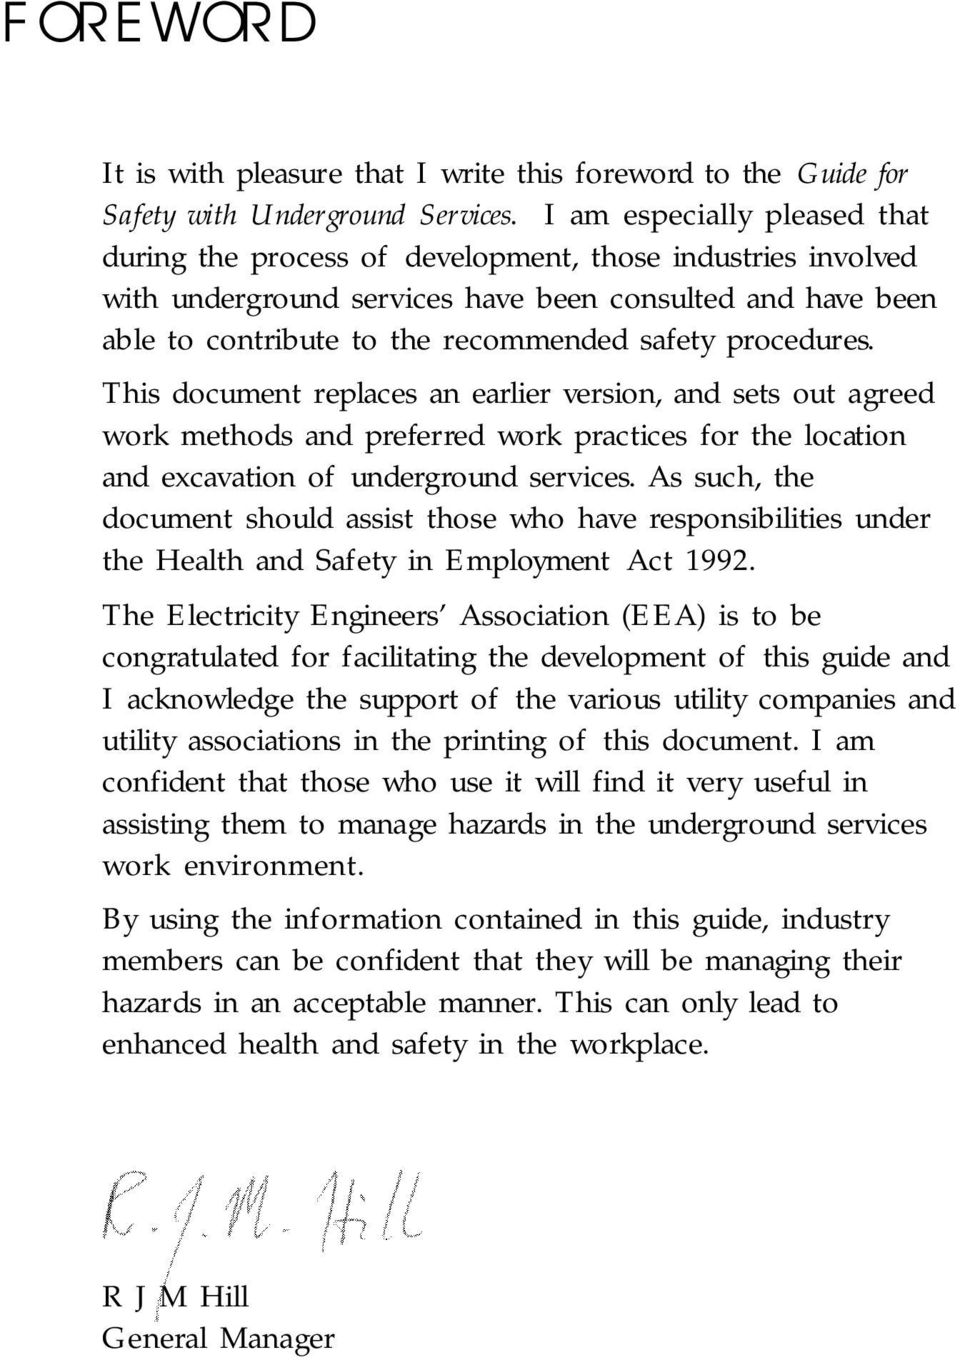 procedures. This document replaces an earlier version, and sets out agreed work methods and preferred work practices for the location and excavation of underground services.